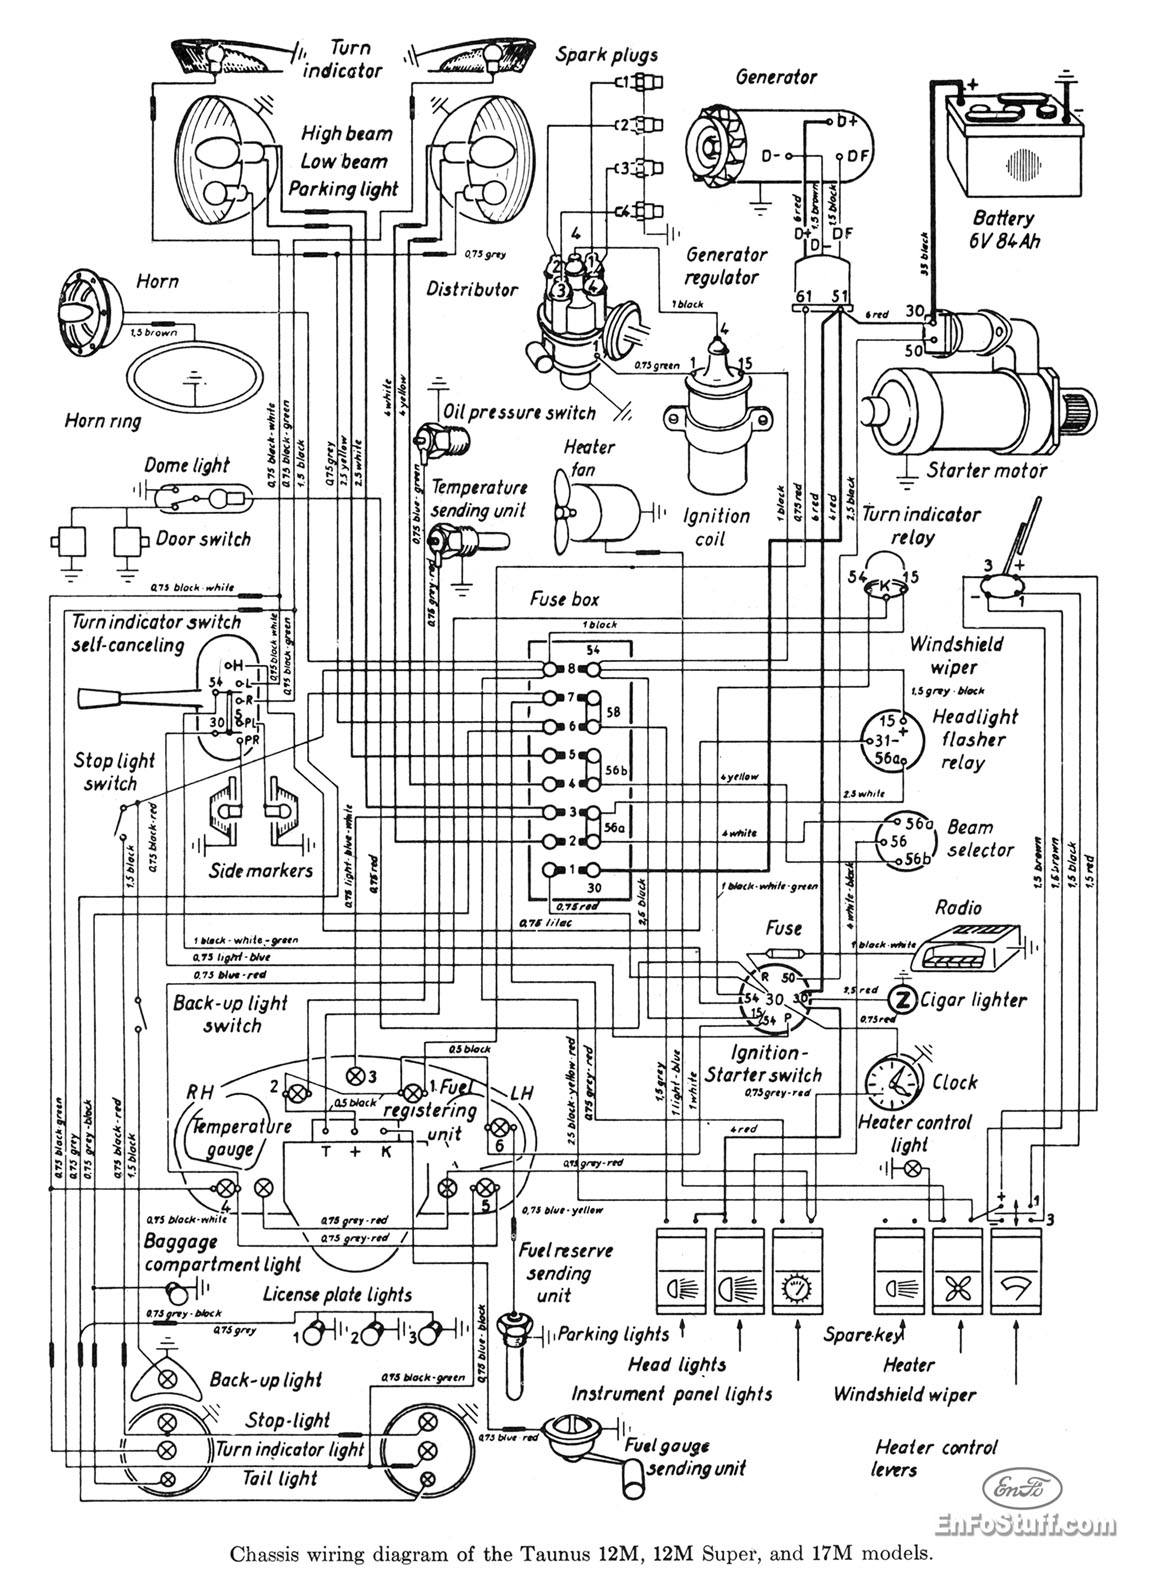 Saturn Fuel Pump Diagram Wiring Library 2005 Chevy Impala Fuse Panel Devanshu U0026 39 S Blog 1966 Chevrolet Ss Ole Ye Er